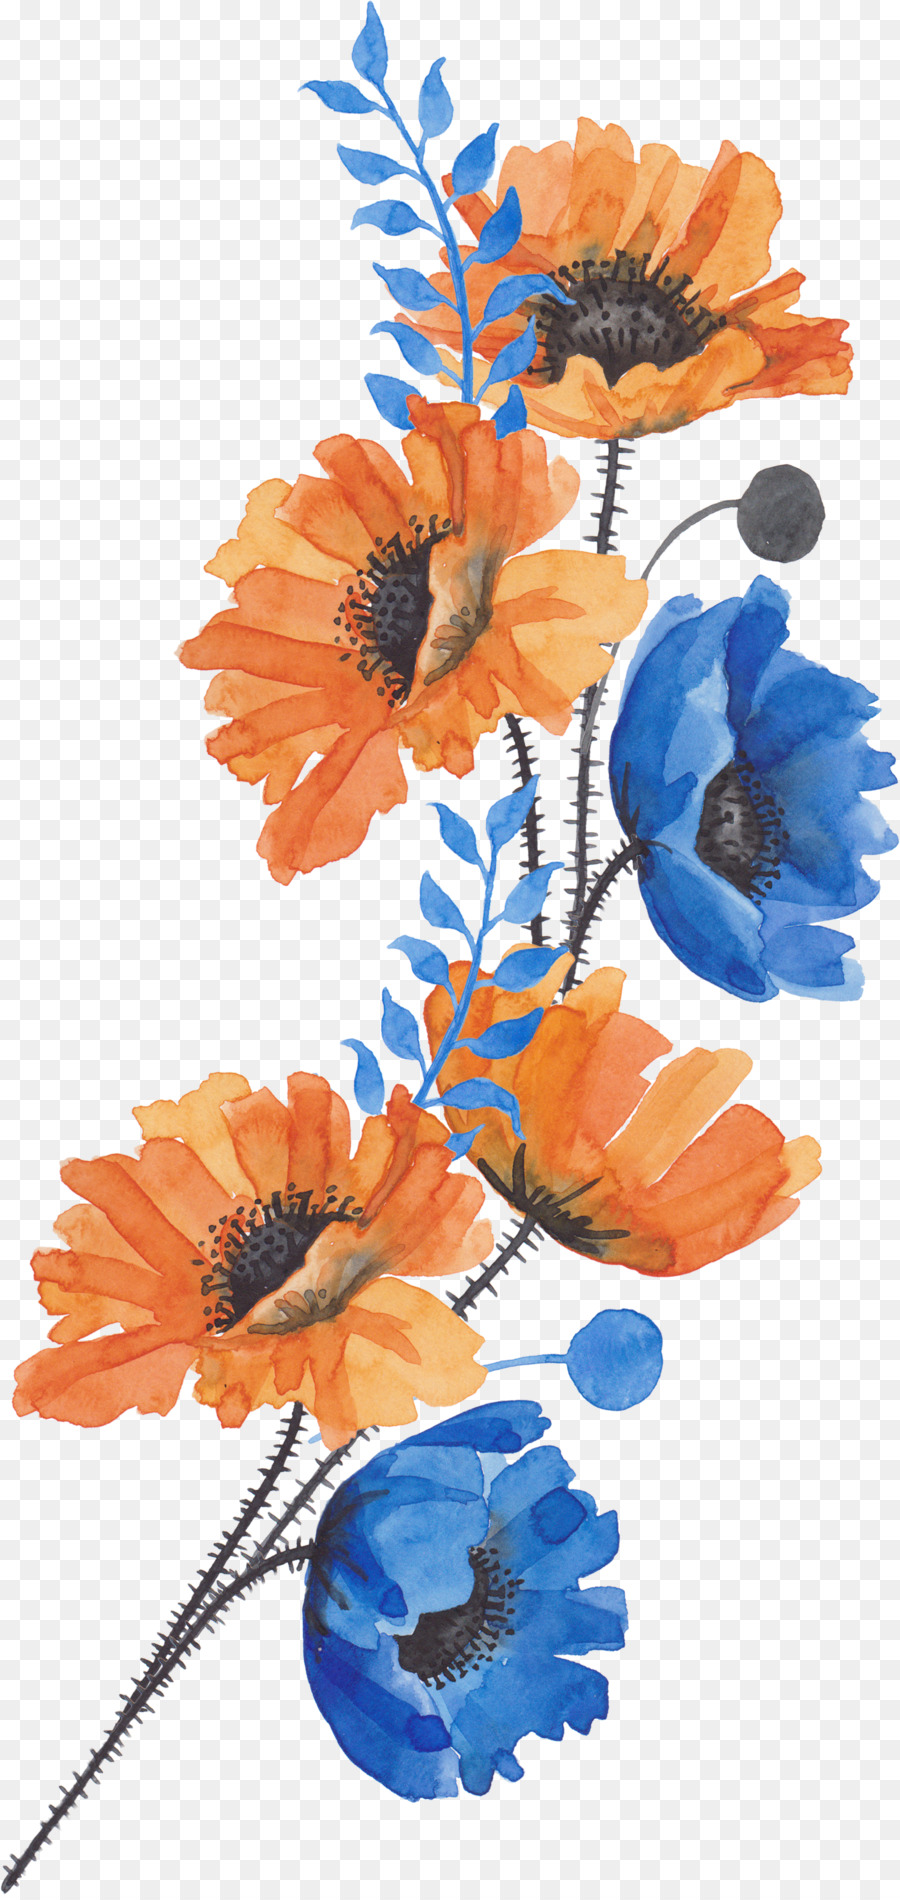 Common poppy Flower - A bouquet of flowers png download - 1638*3449 ...